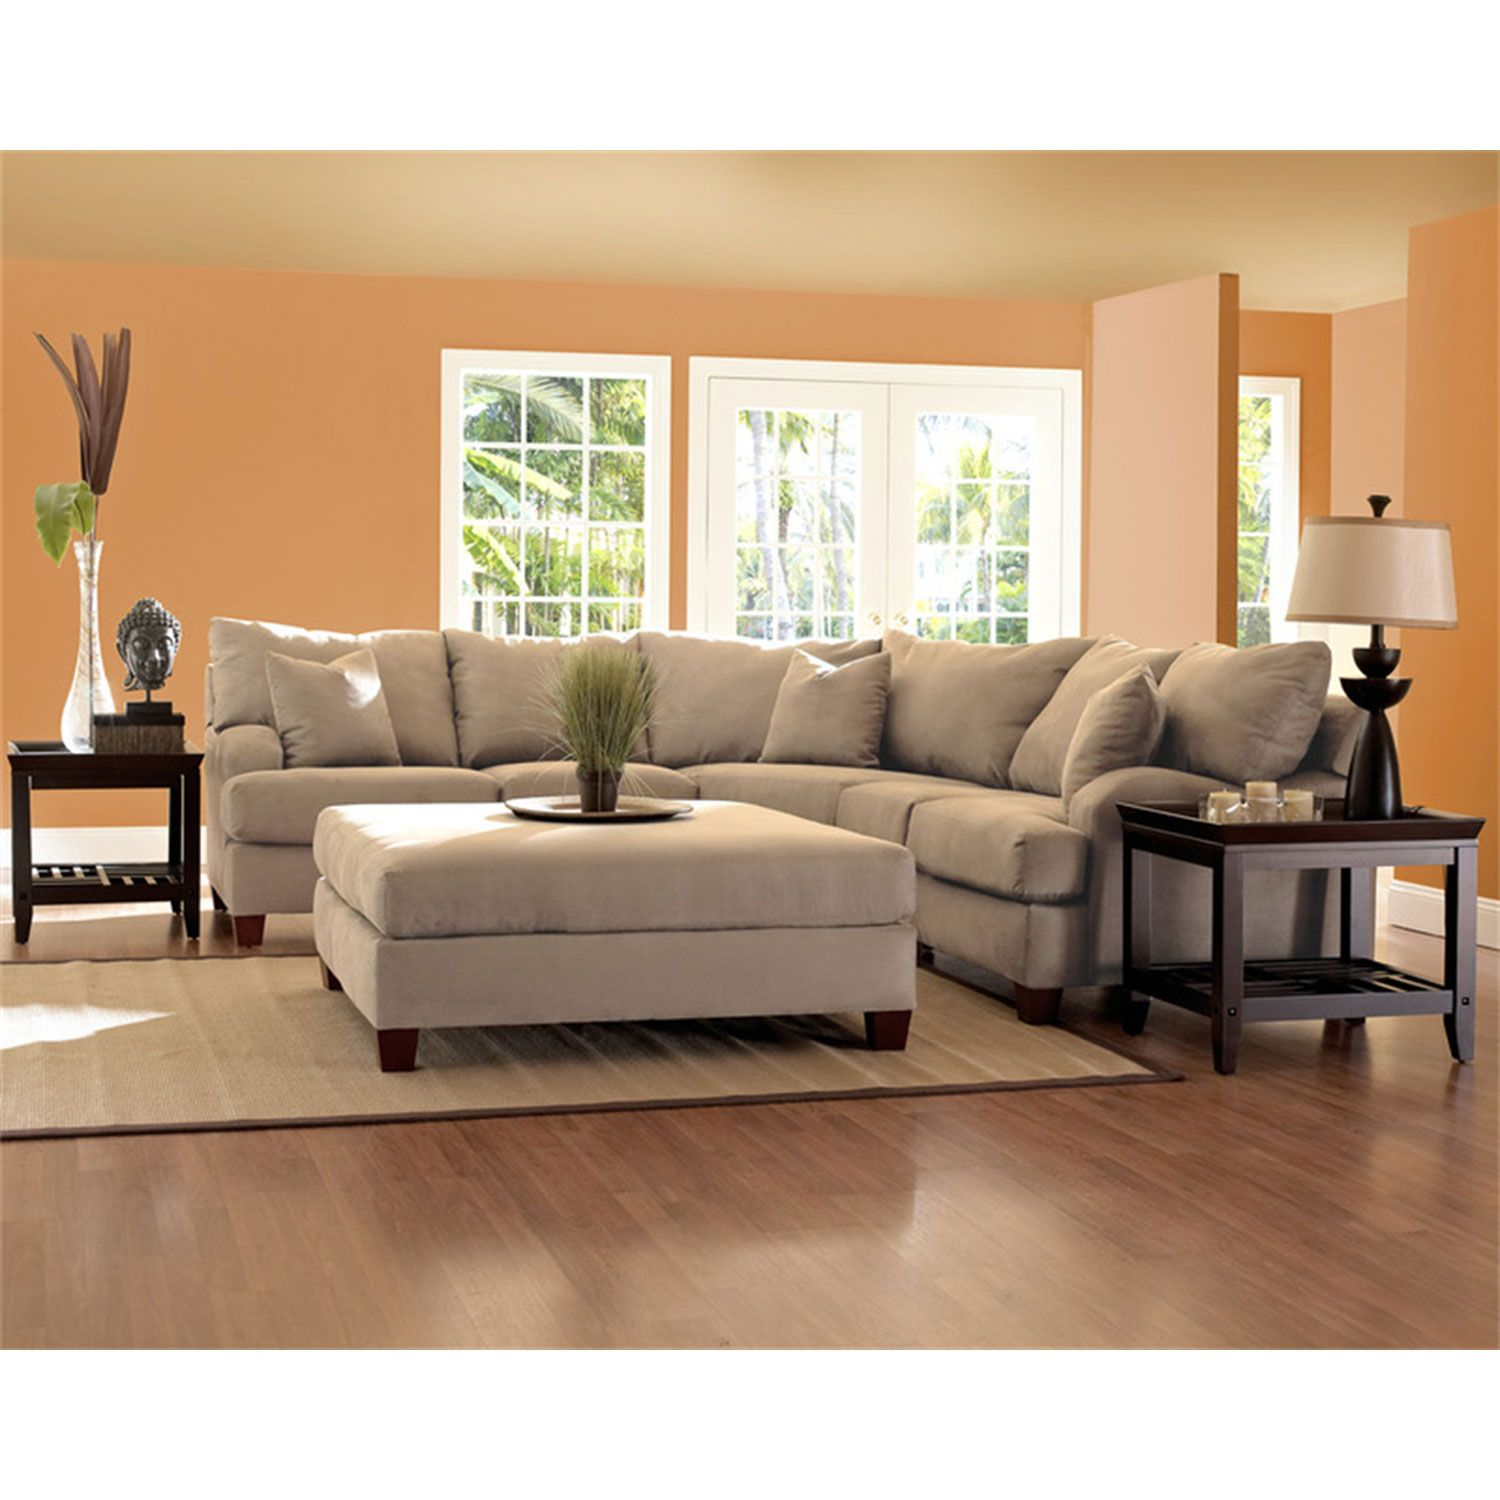 Canyon Beige Sectional Sectional Sofas Sofas Sectionals Living